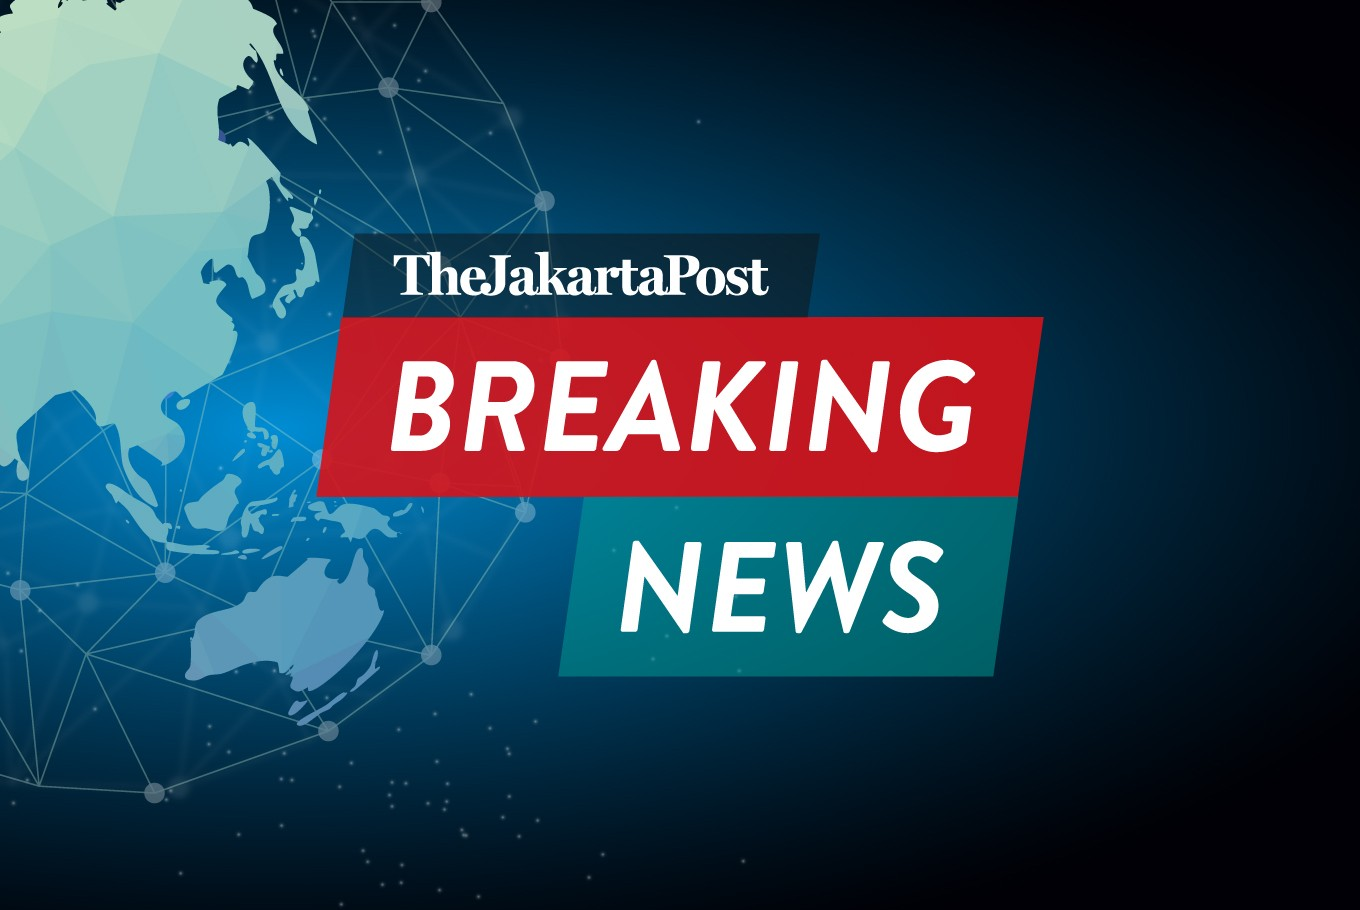 BREAKING: Jokowi number 1, Prabowo number 2 on ballot